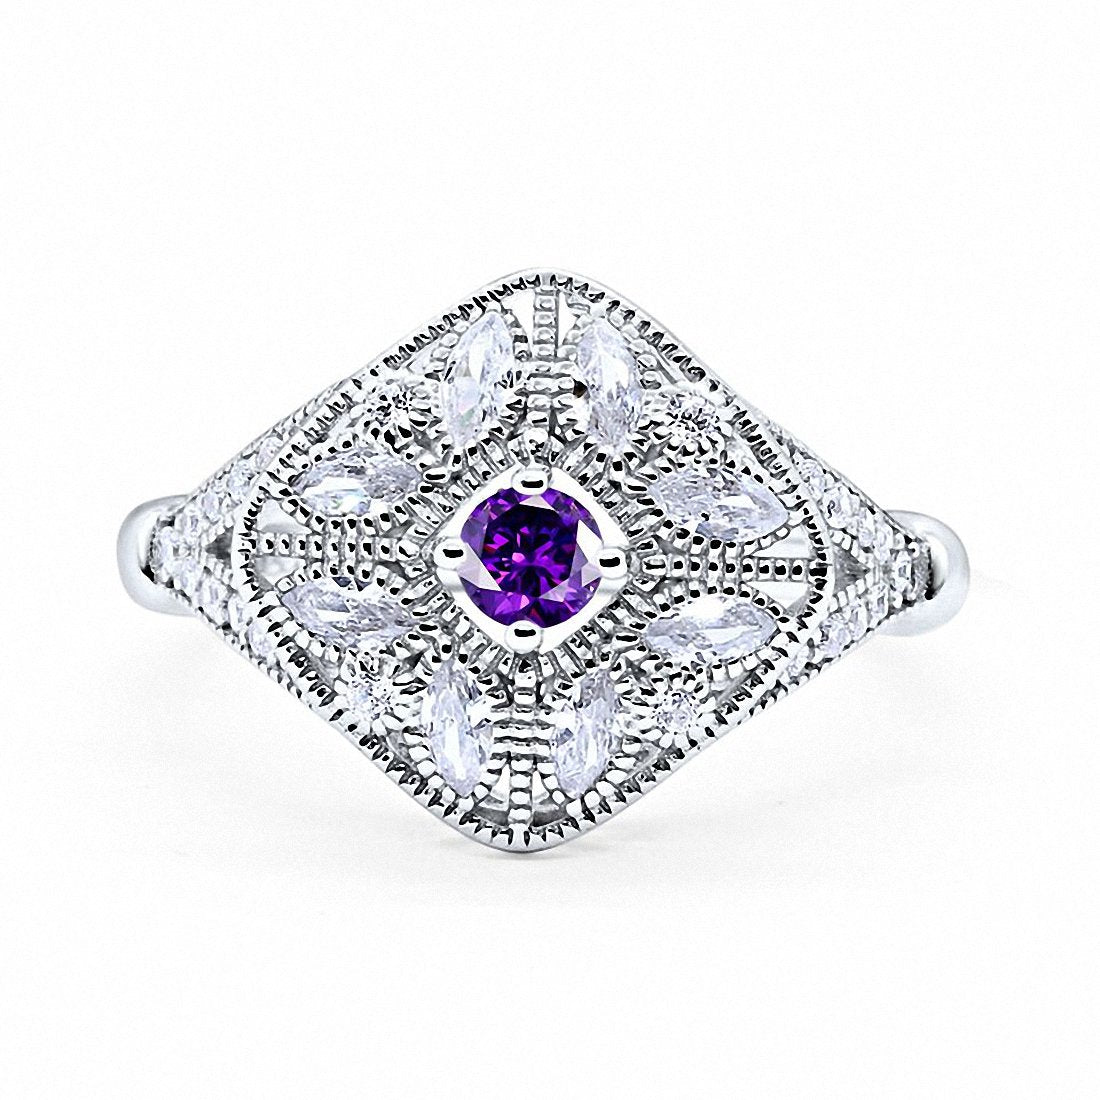 Art Deco Ring Marquise Filigree Round Cubic Zirconia 925 Sterling Silver Choose Color